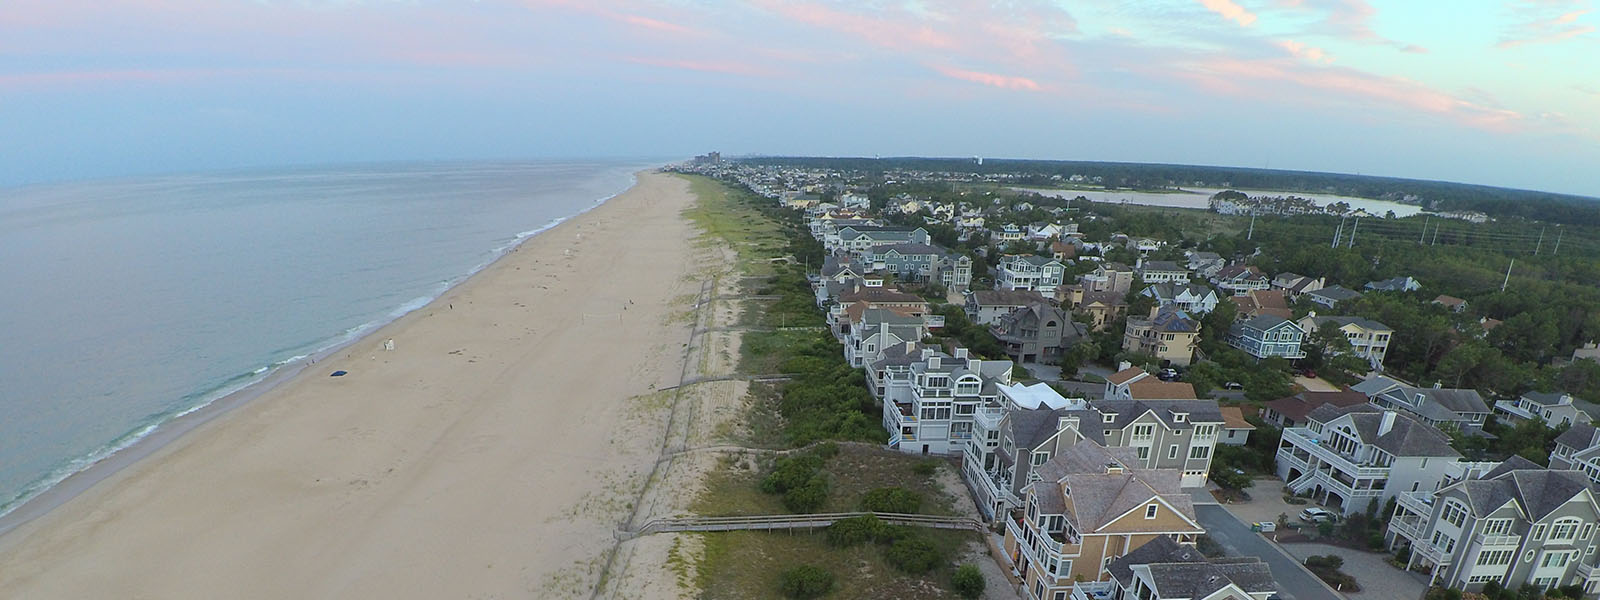 Bethany Beach Real Estate at its Best - Bethany Area Realty